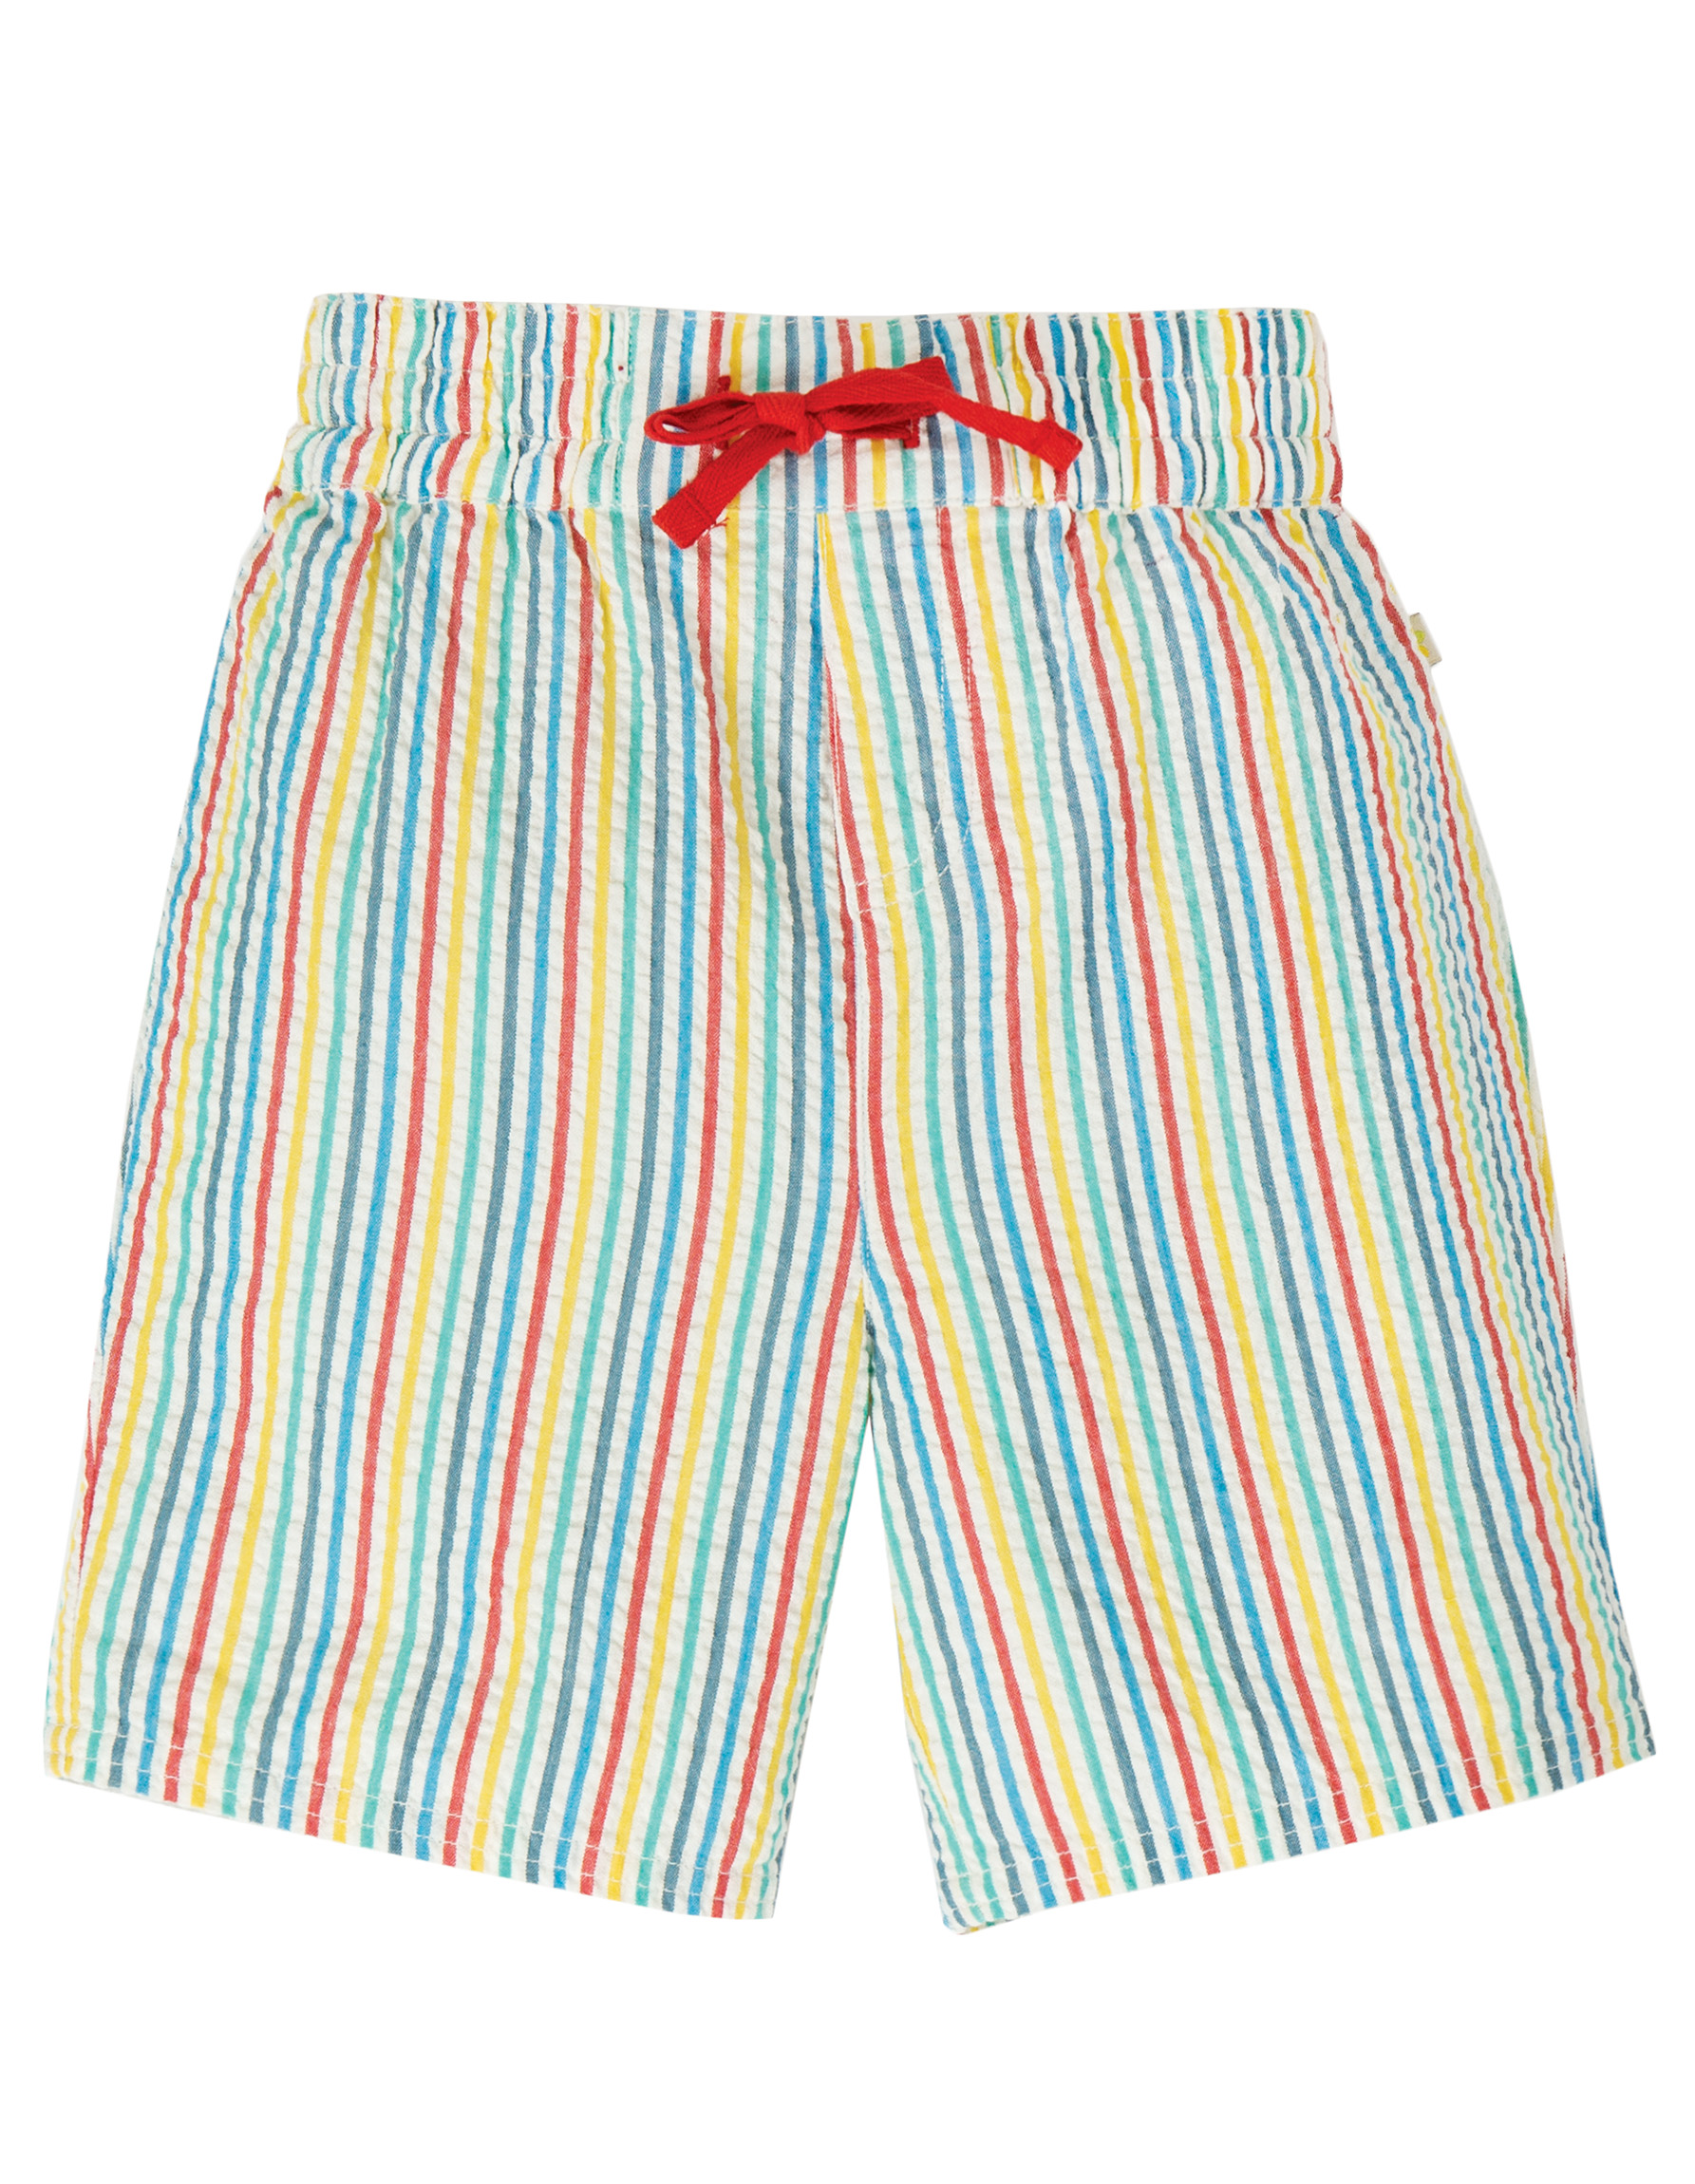 Frugi Akiara Shorts, Multi Seersucker Stripe